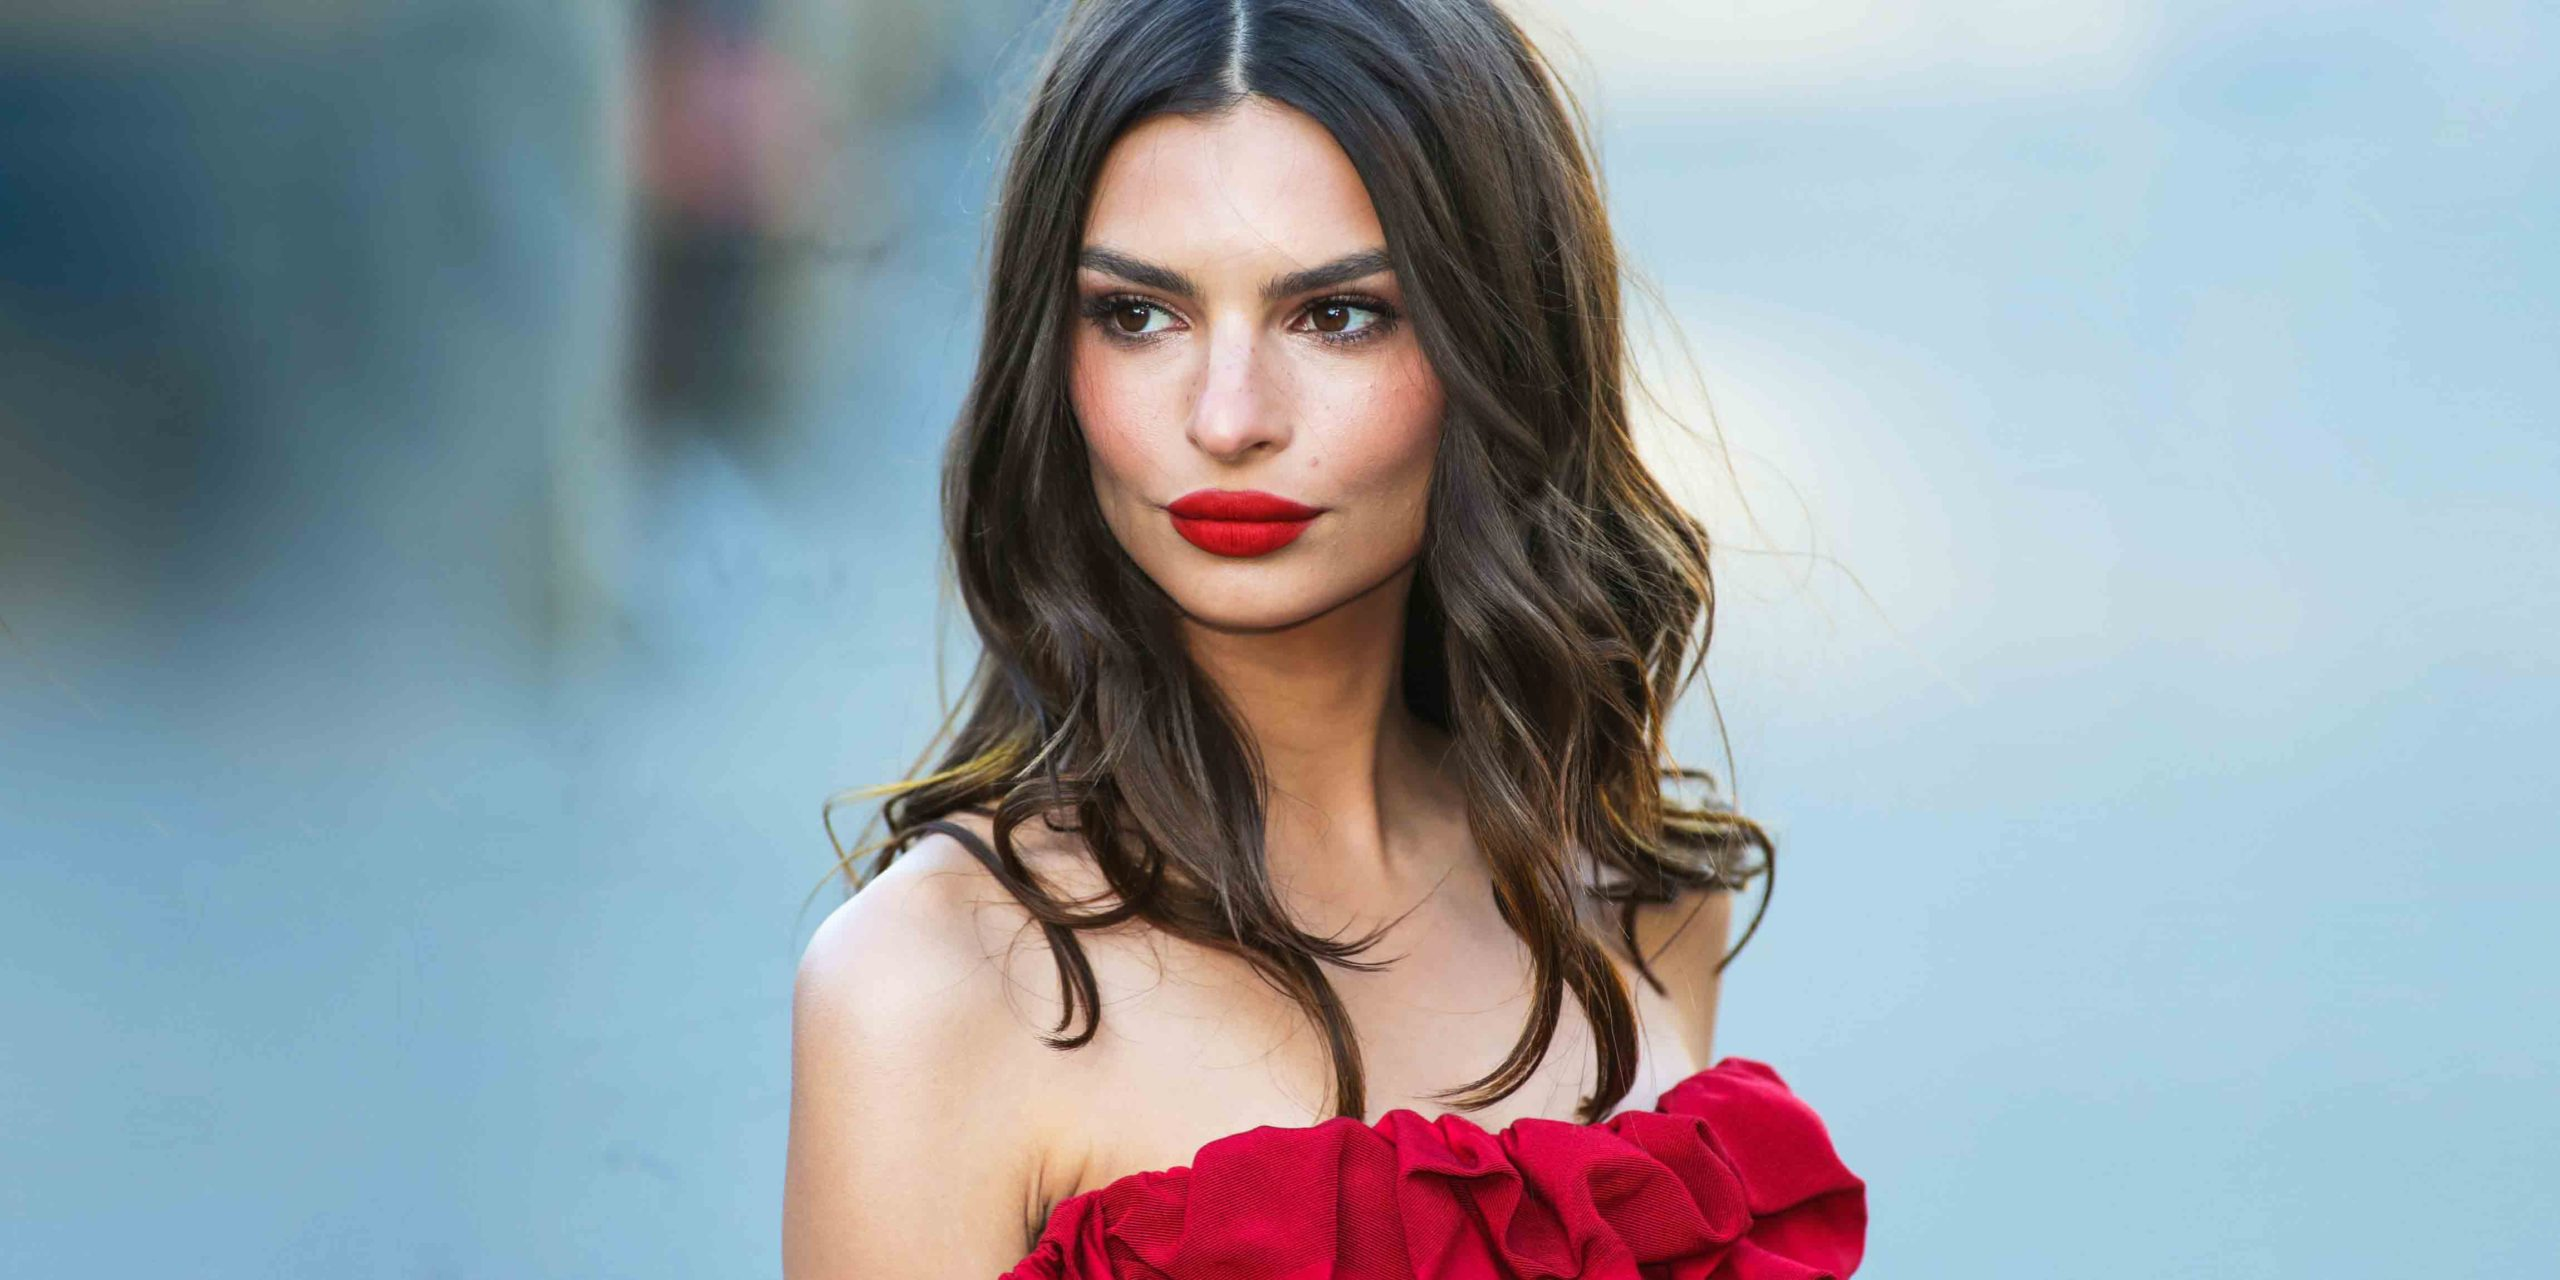 Top Model Emily Ratajkowski Red Dress scaled - Emily Ratajkowski Net Worth, Pics, Wallpapers, Career and Biography